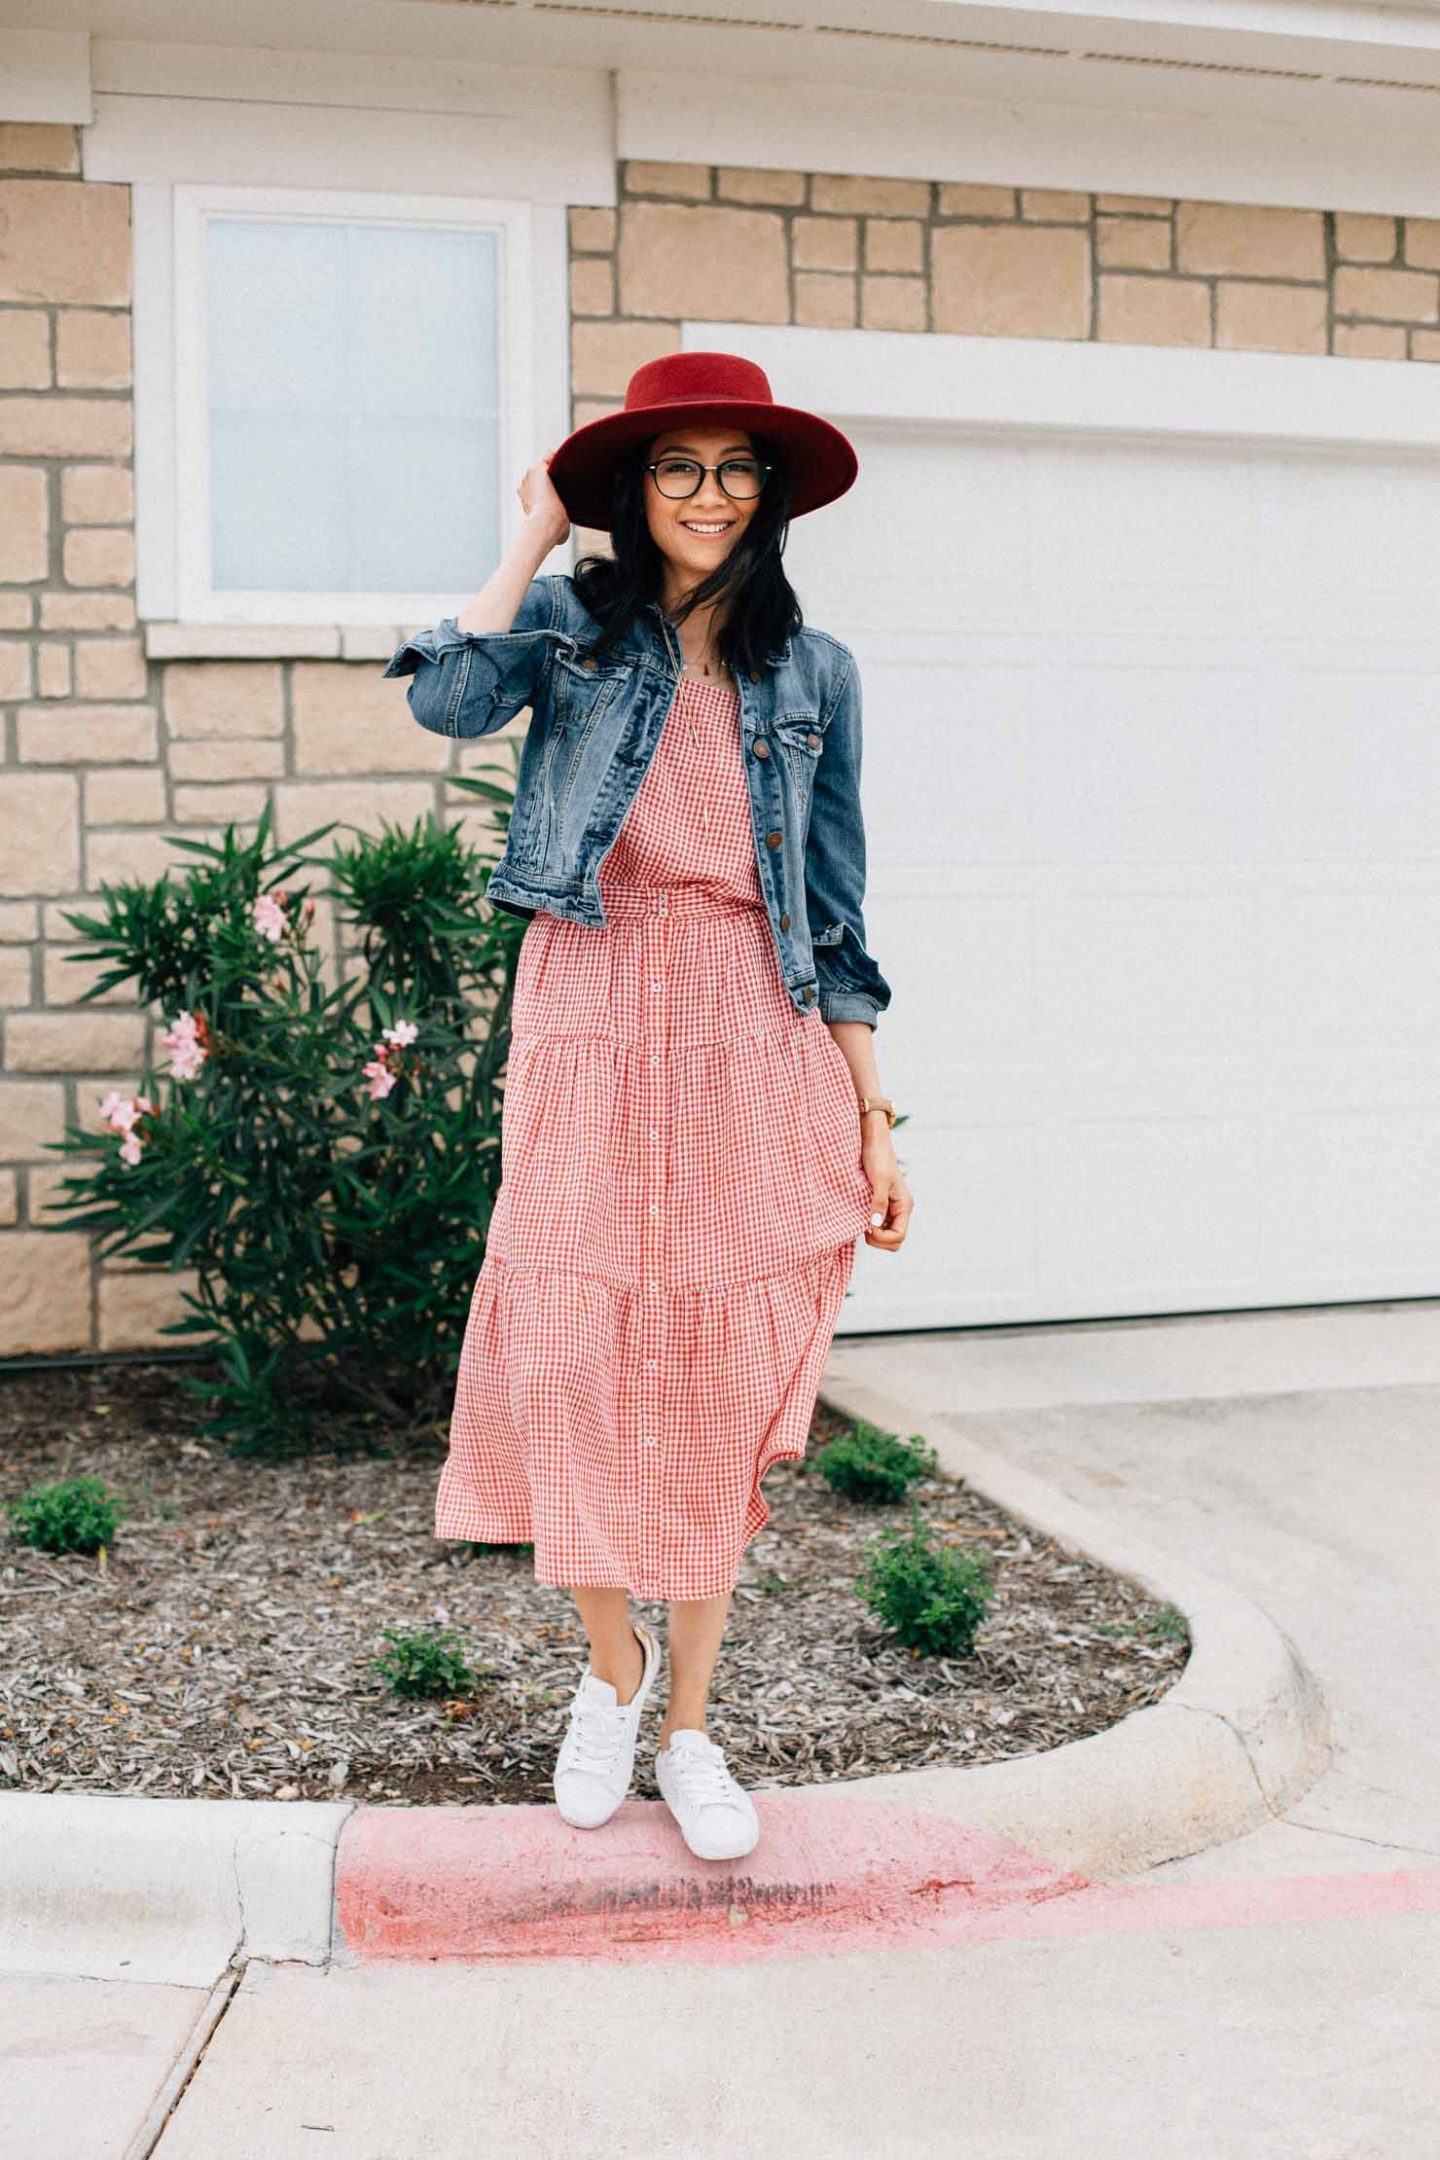 Gingham Set + White Sneakers | Effortless Spring Look